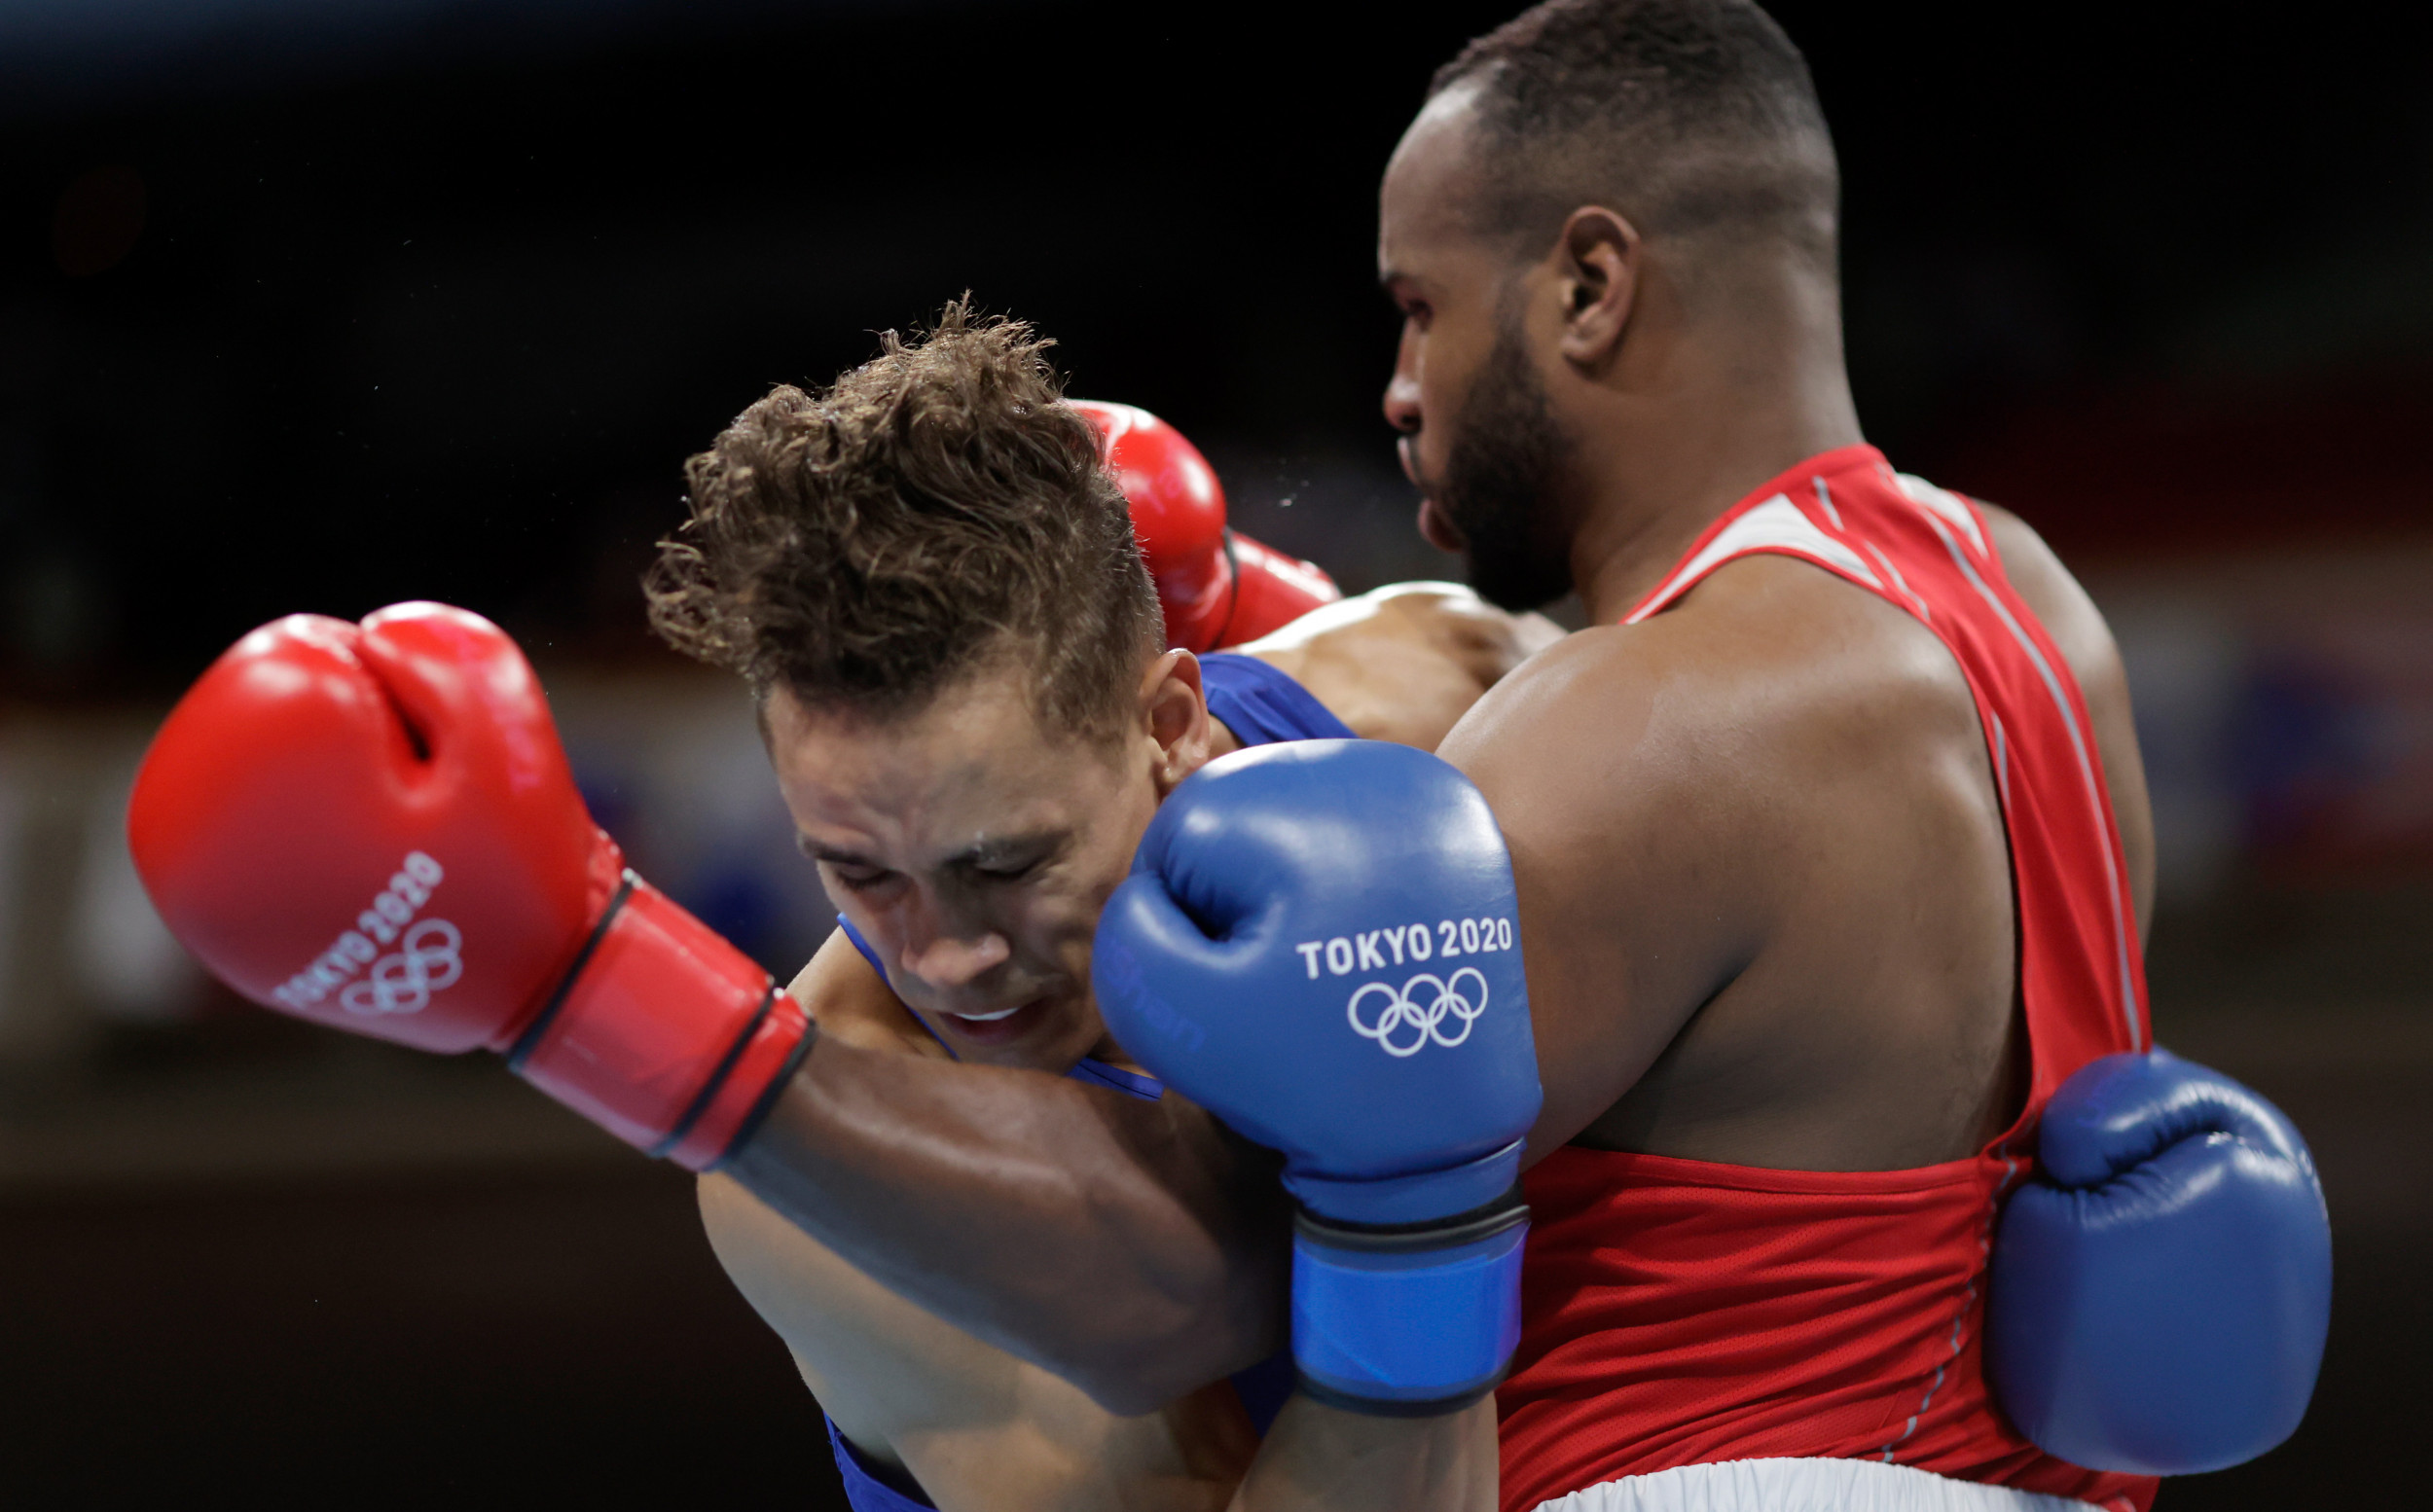 Boxer Youness Baalla Tries to Bite Off Opponent's Ear During Olympics Fight